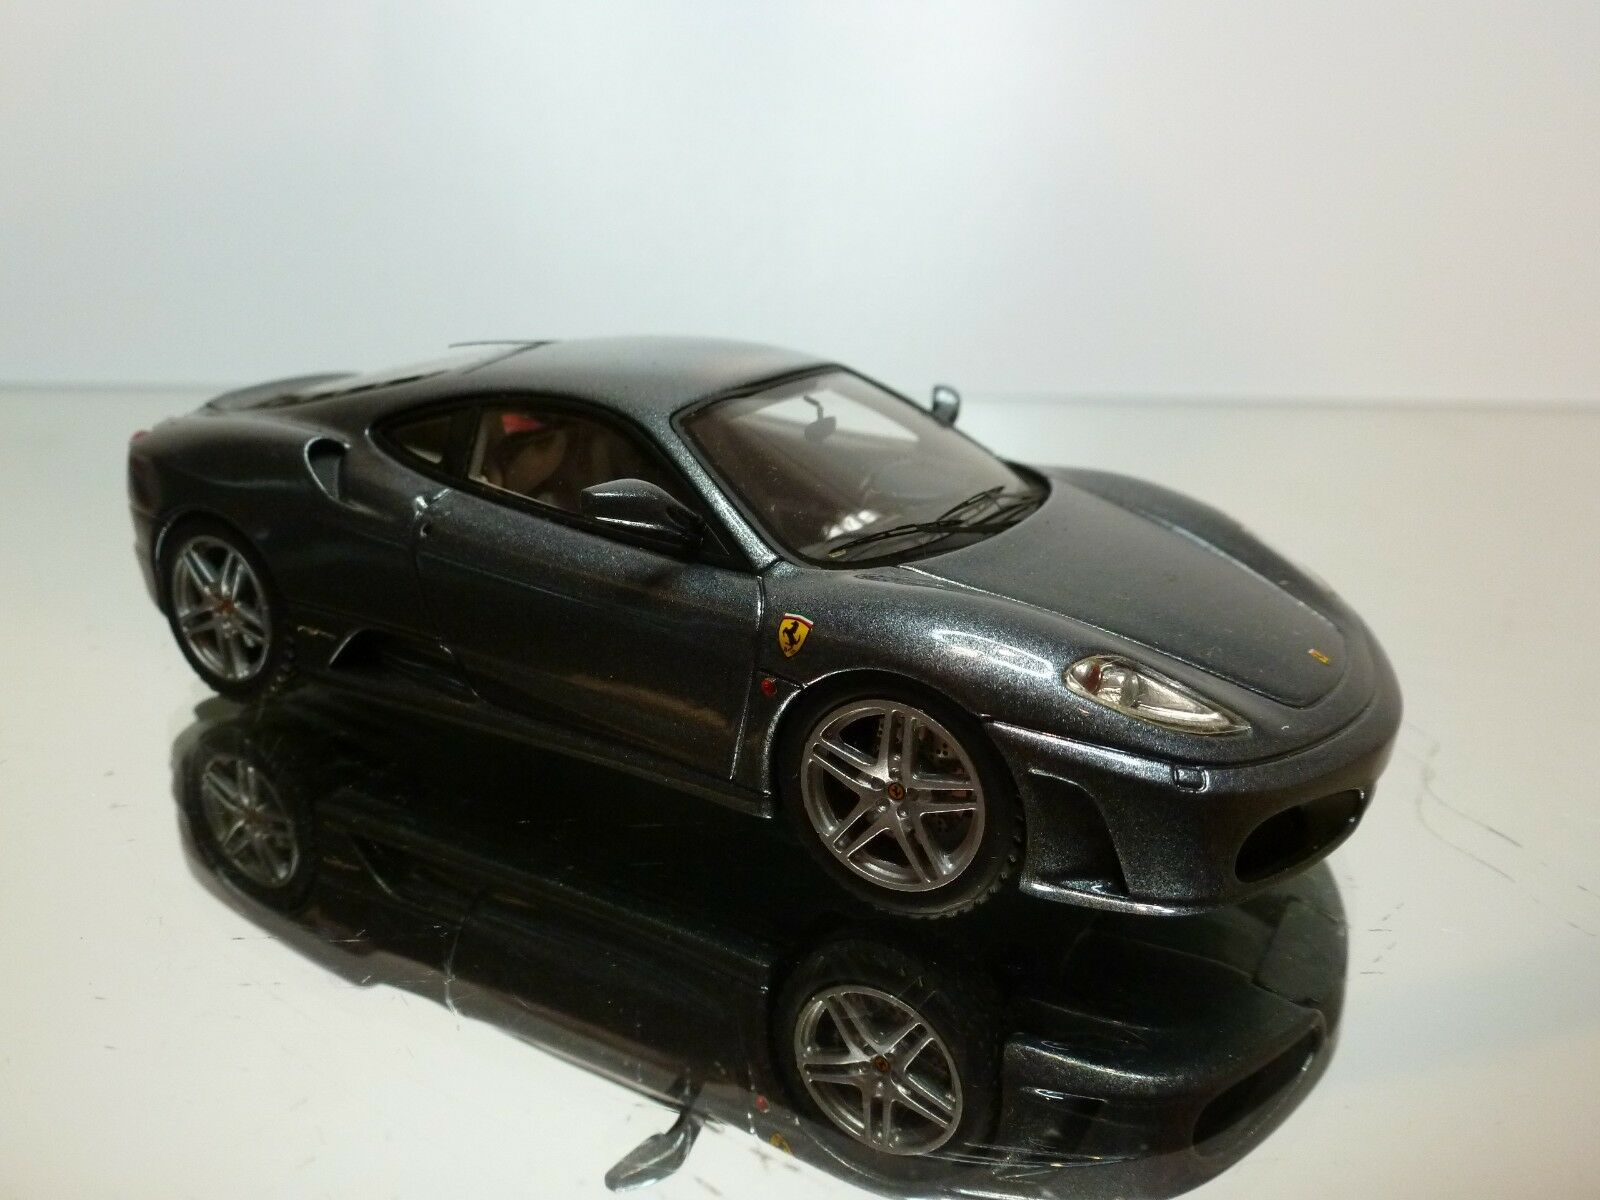 LOOKSMART 112D FERRARI F430 - ANTHRACITE 1:43 - GOOD CONDITION CONDITION CONDITION  7/8 4a3d62